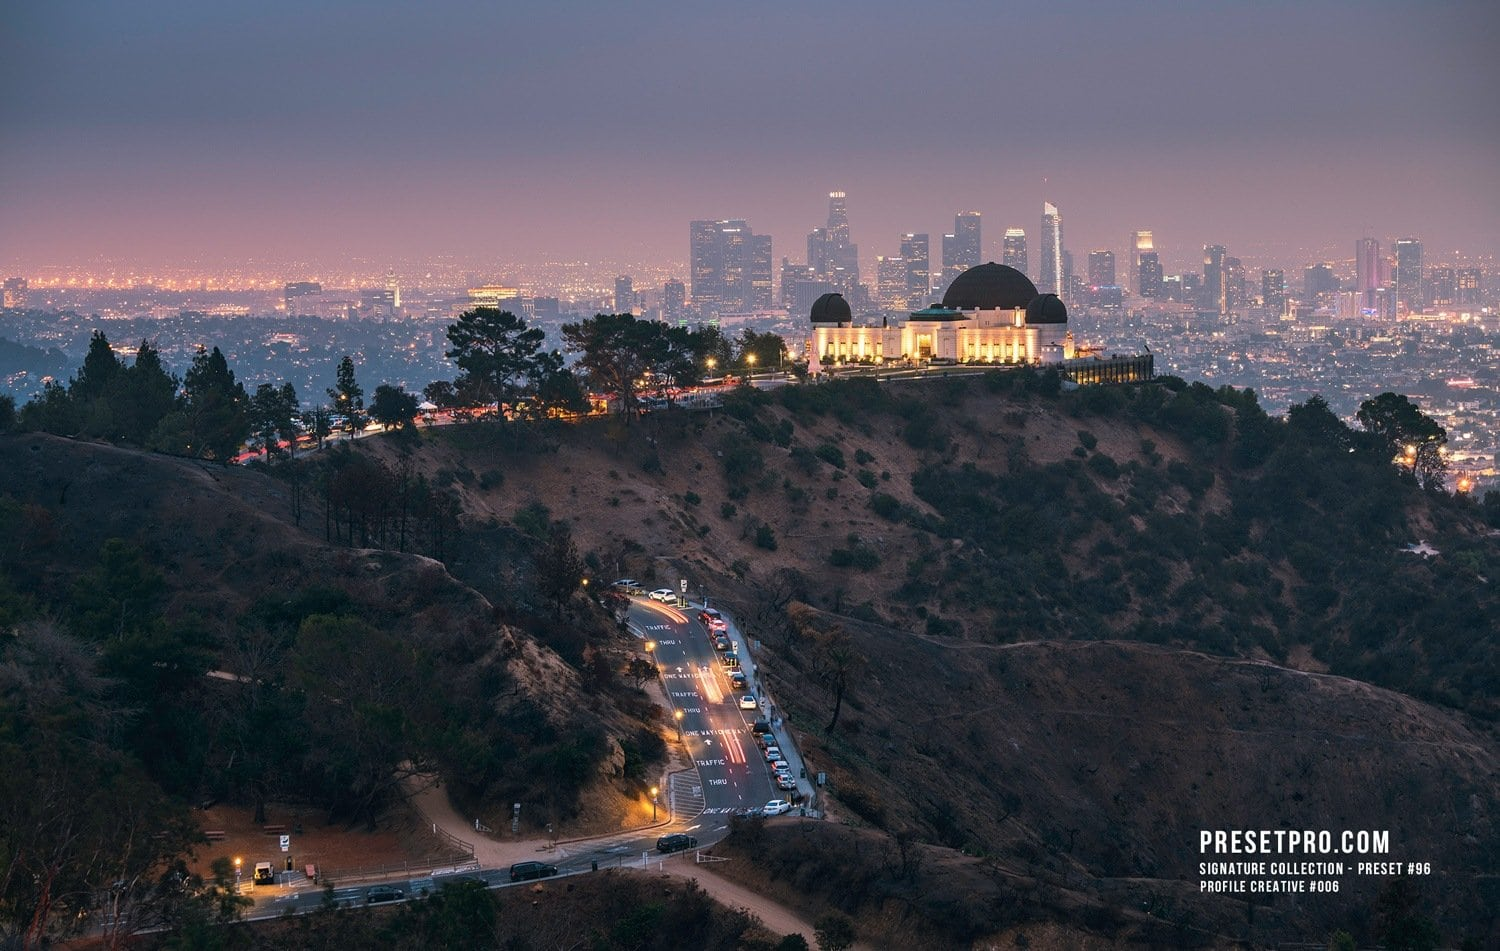 Creative Flow Lightroom Presets and Profiles Hollywood Hills C001-P96-Creative-06